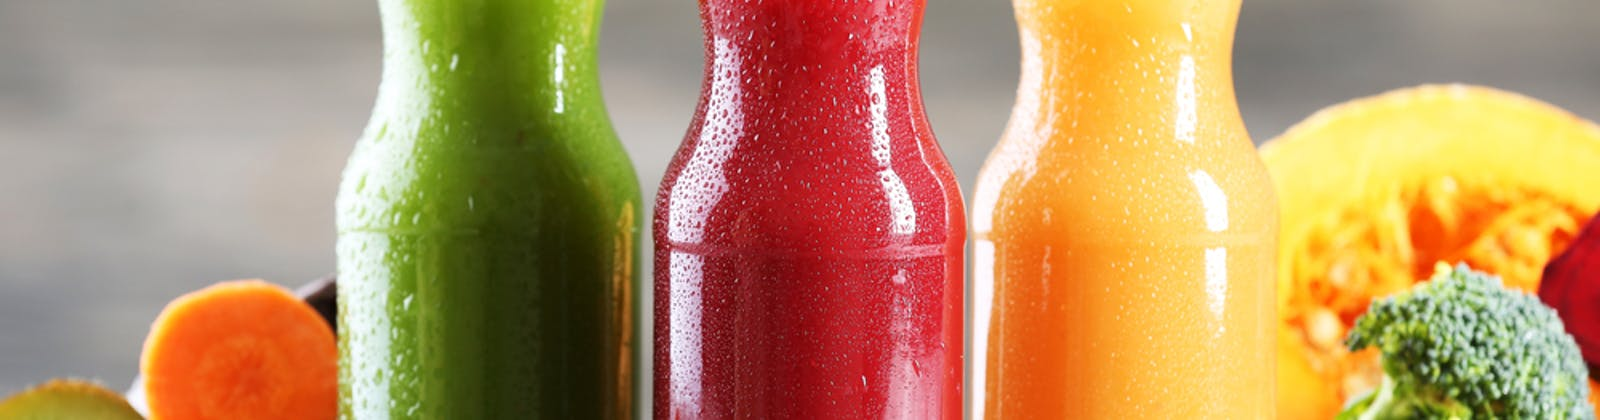 juice In glass bottles